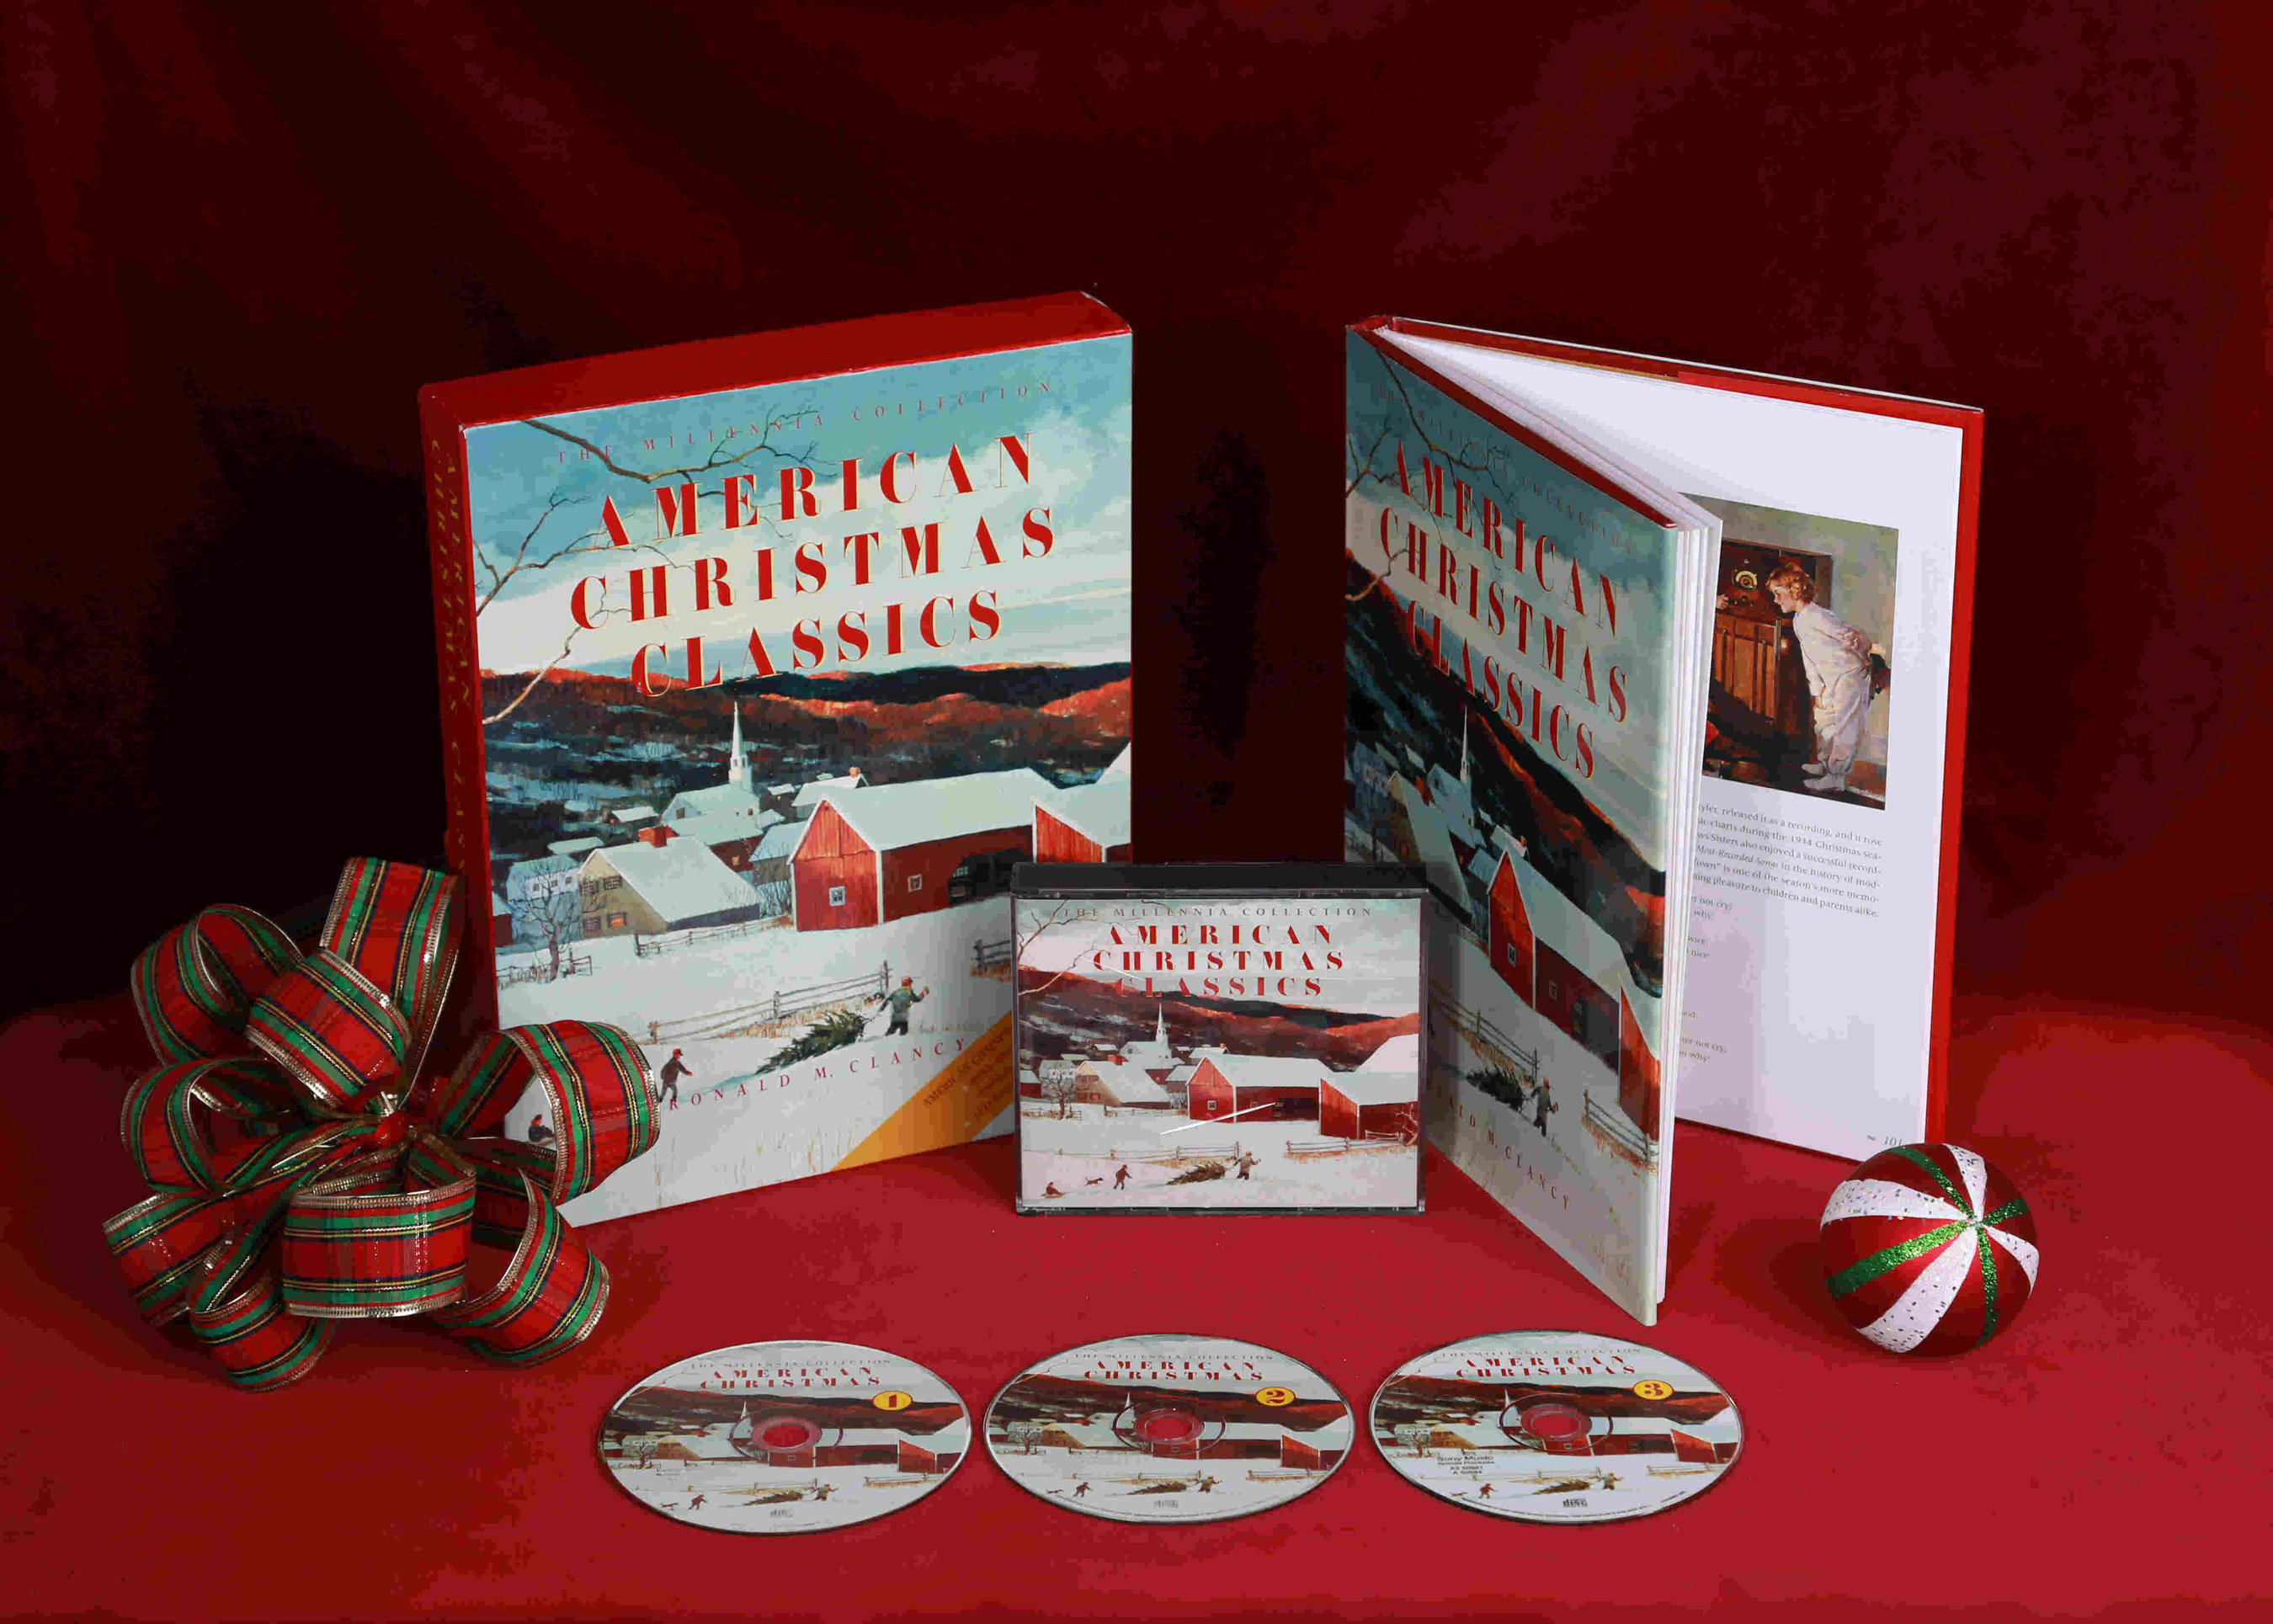 christmas classics ltd believes now is the time to give to our military veterans who have made great sacrifices to help make the world a better place - Christmas Music Classics